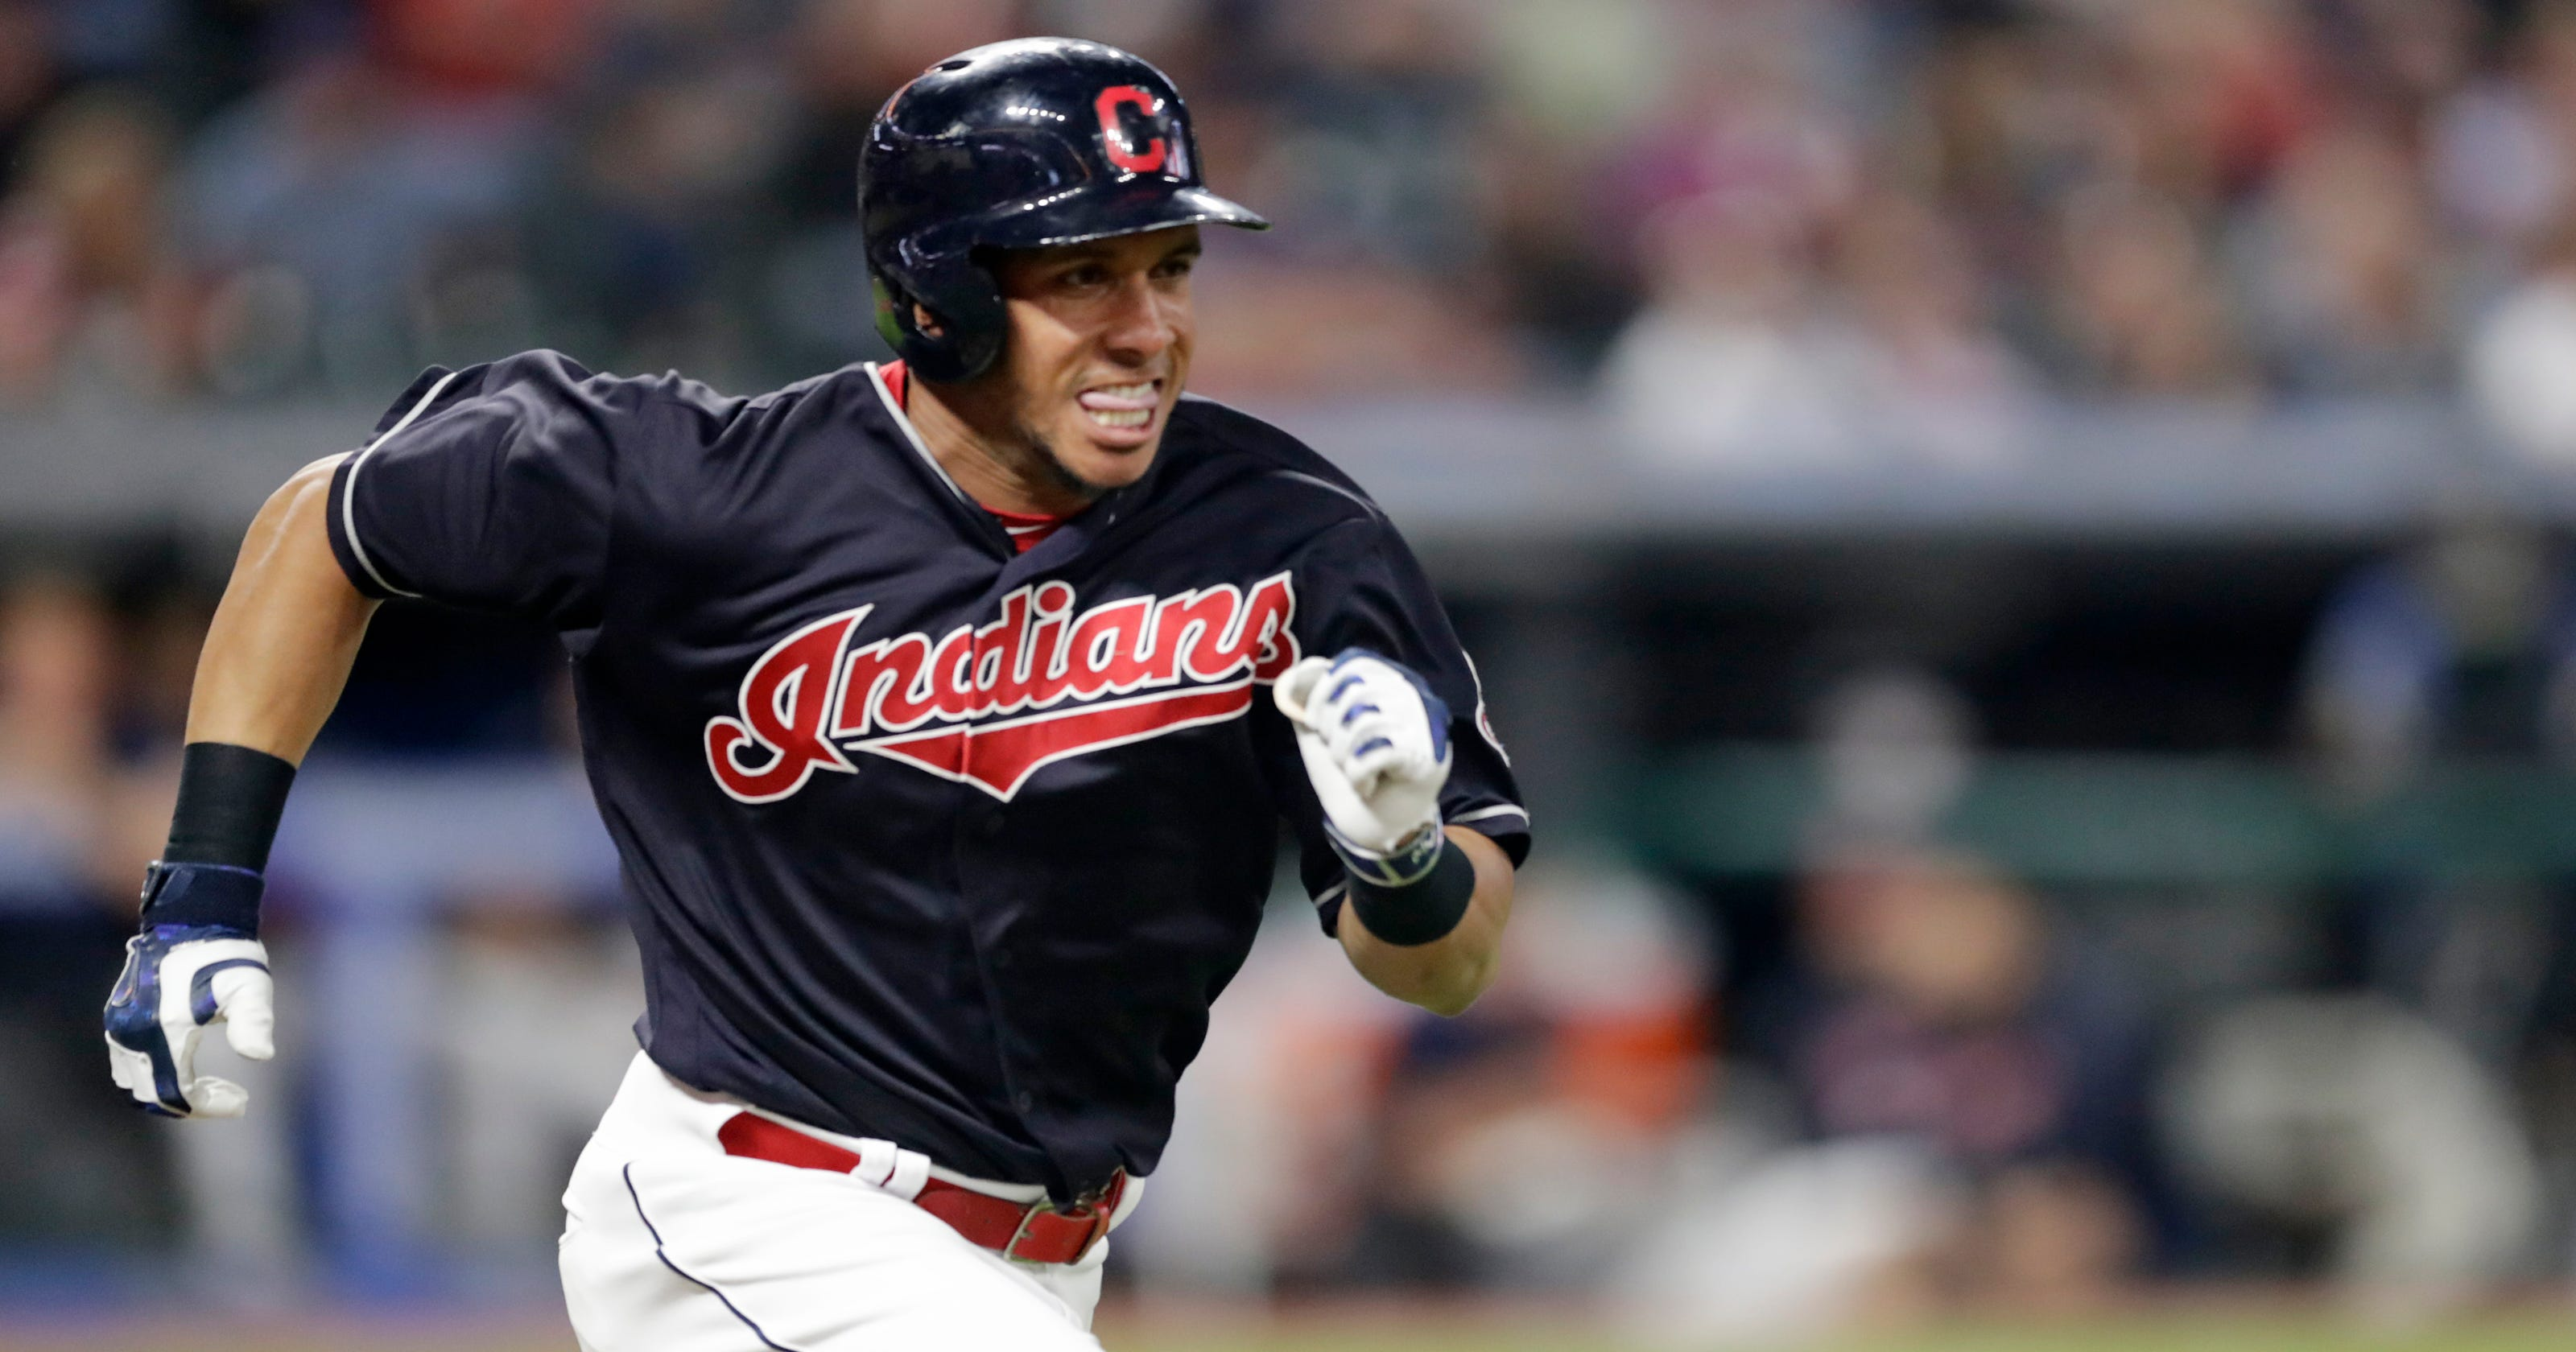 AP source: Astros agree to 2-year deal with Michael Brantley